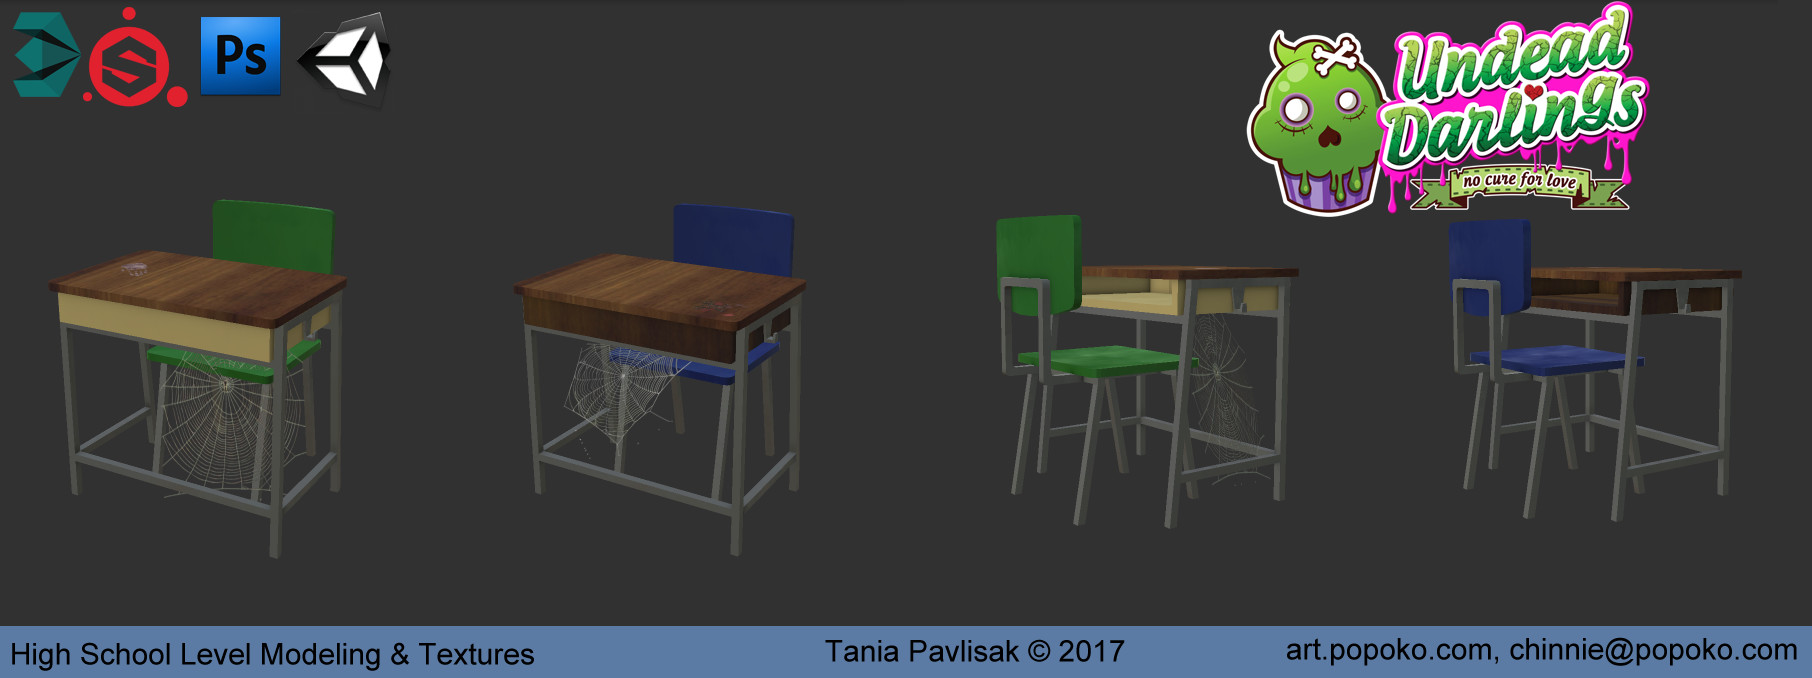 Tania pavlisak ud school kit chairsingle